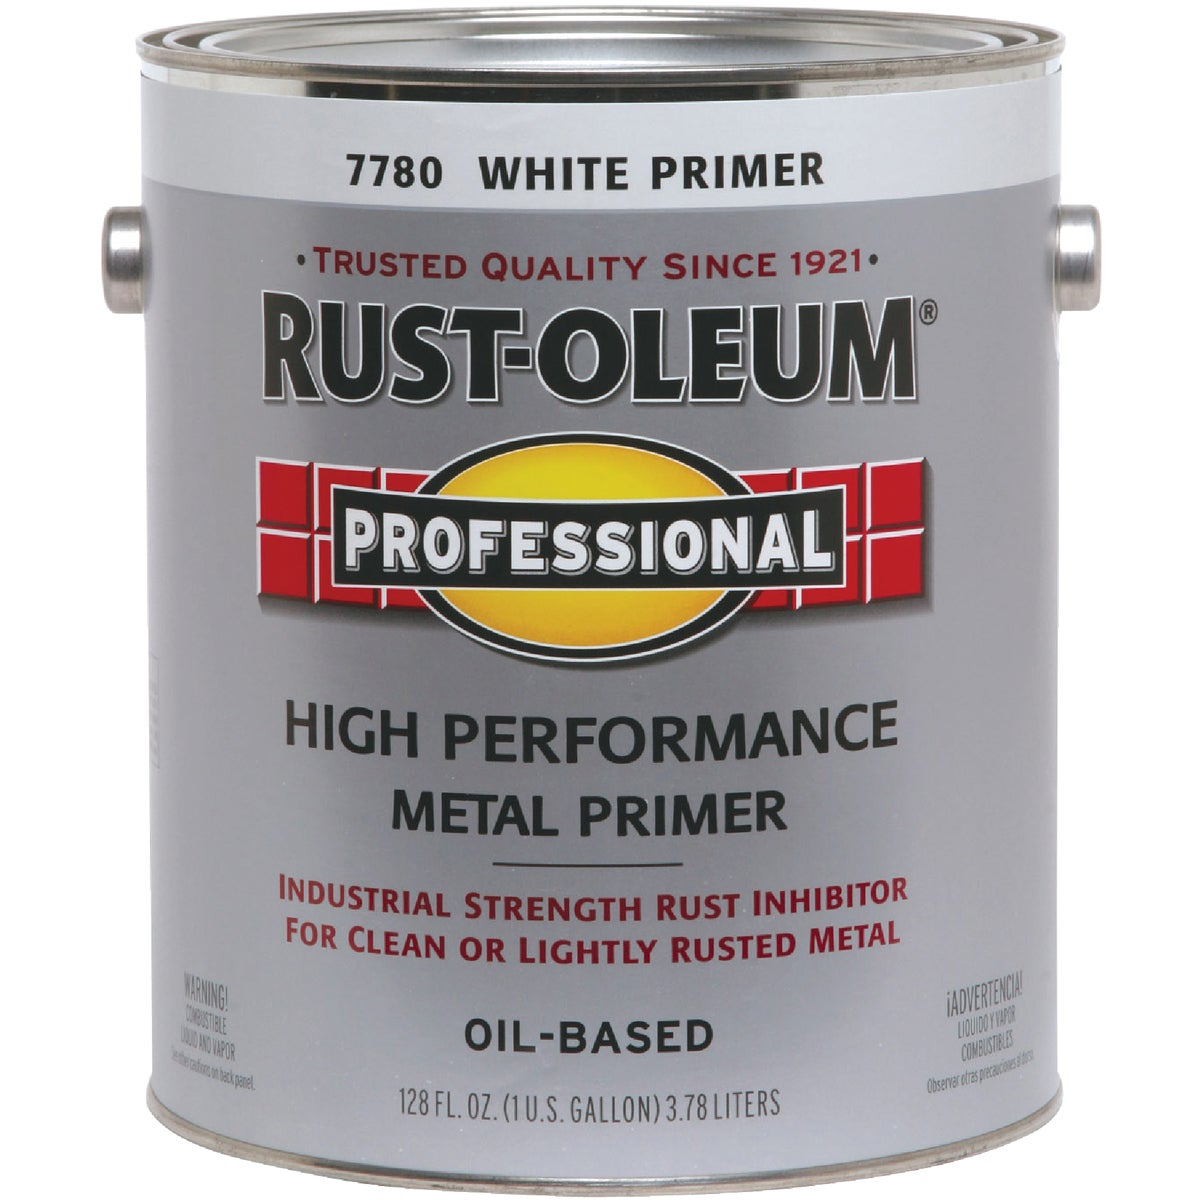 WHITE CLEAN METAL PRIMER - 7780-402 by Rustoleum